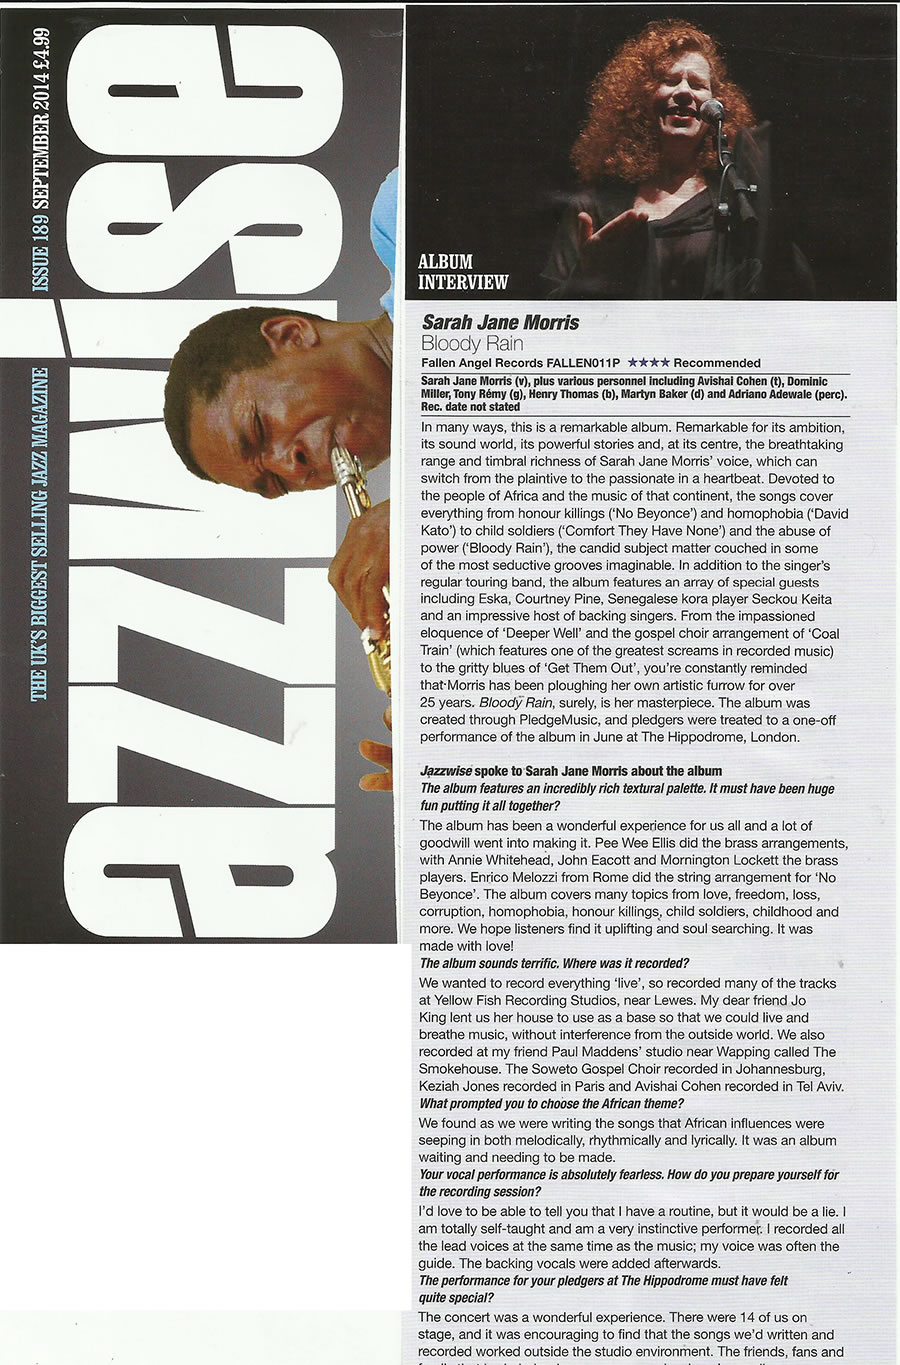 Jazzwise interview